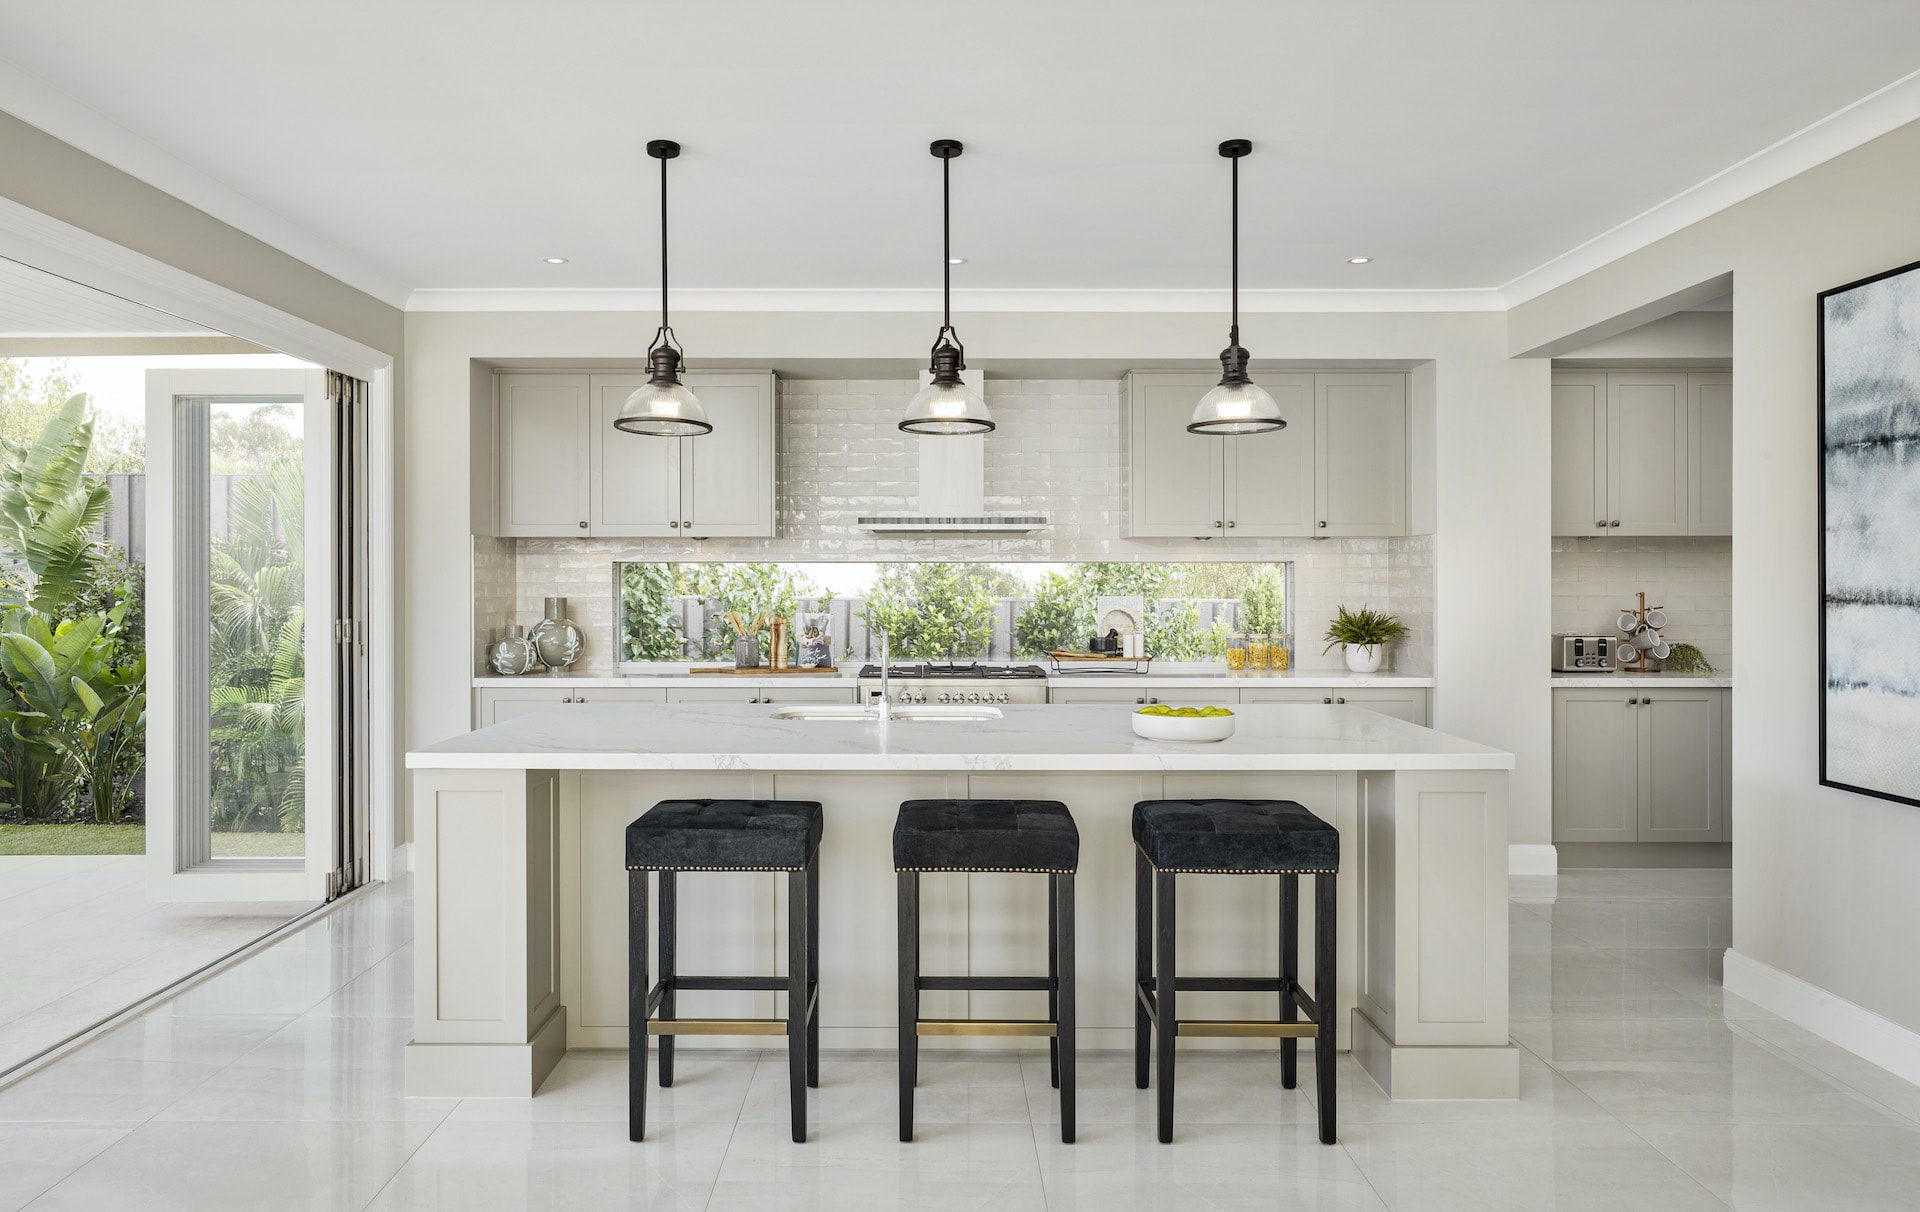 modern provincial kitchen with grey shaker cabinets kitchen island with industrial pendant lights